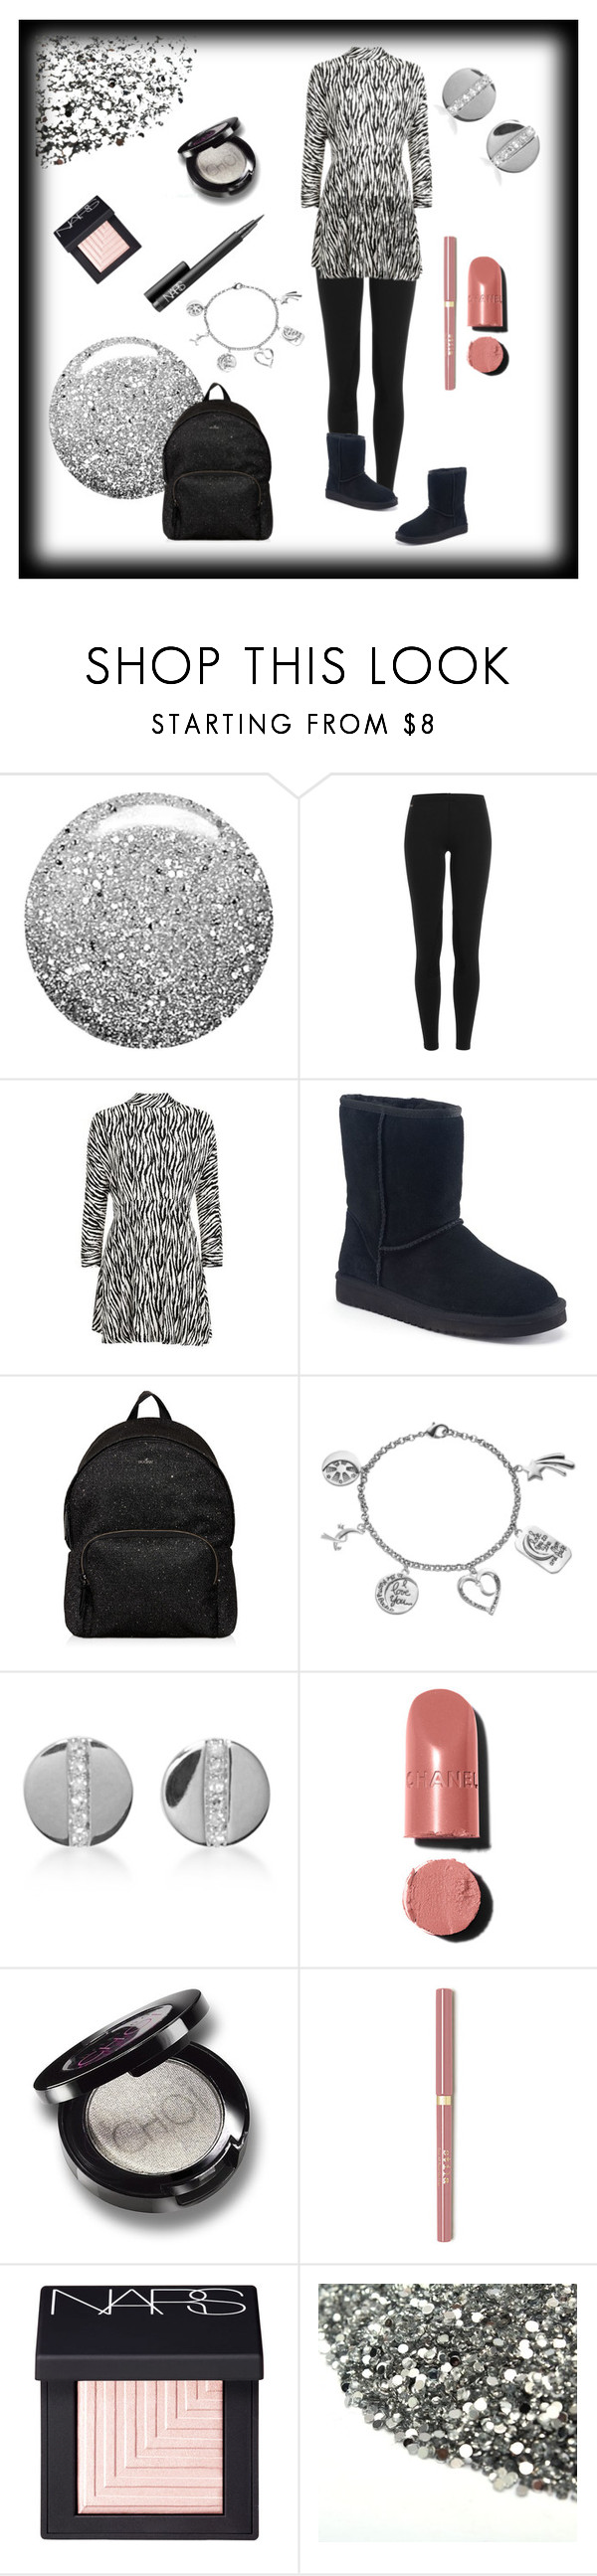 """""""Let's go to the Mall."""" by klm62 ❤ liked on Polyvore featuring Topshop, Polo Ralph Lauren, Koolaburra, Hogan, Love This Life, EF Collection, Chanel and NARS Cosmetics"""